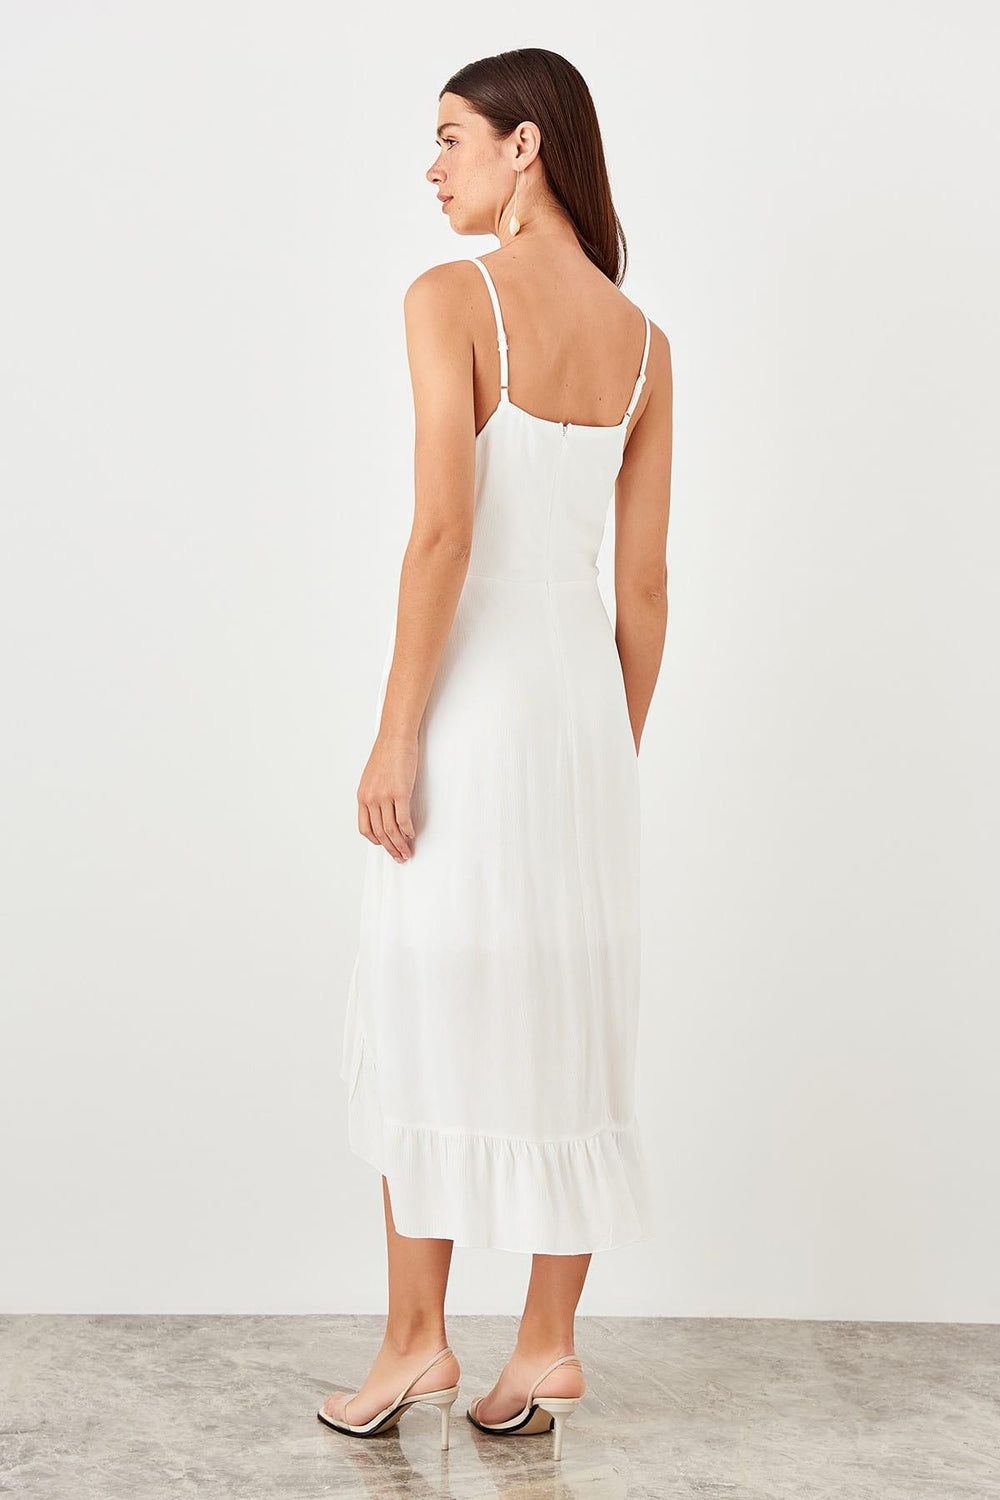 White Halter Dress - Top Maxy